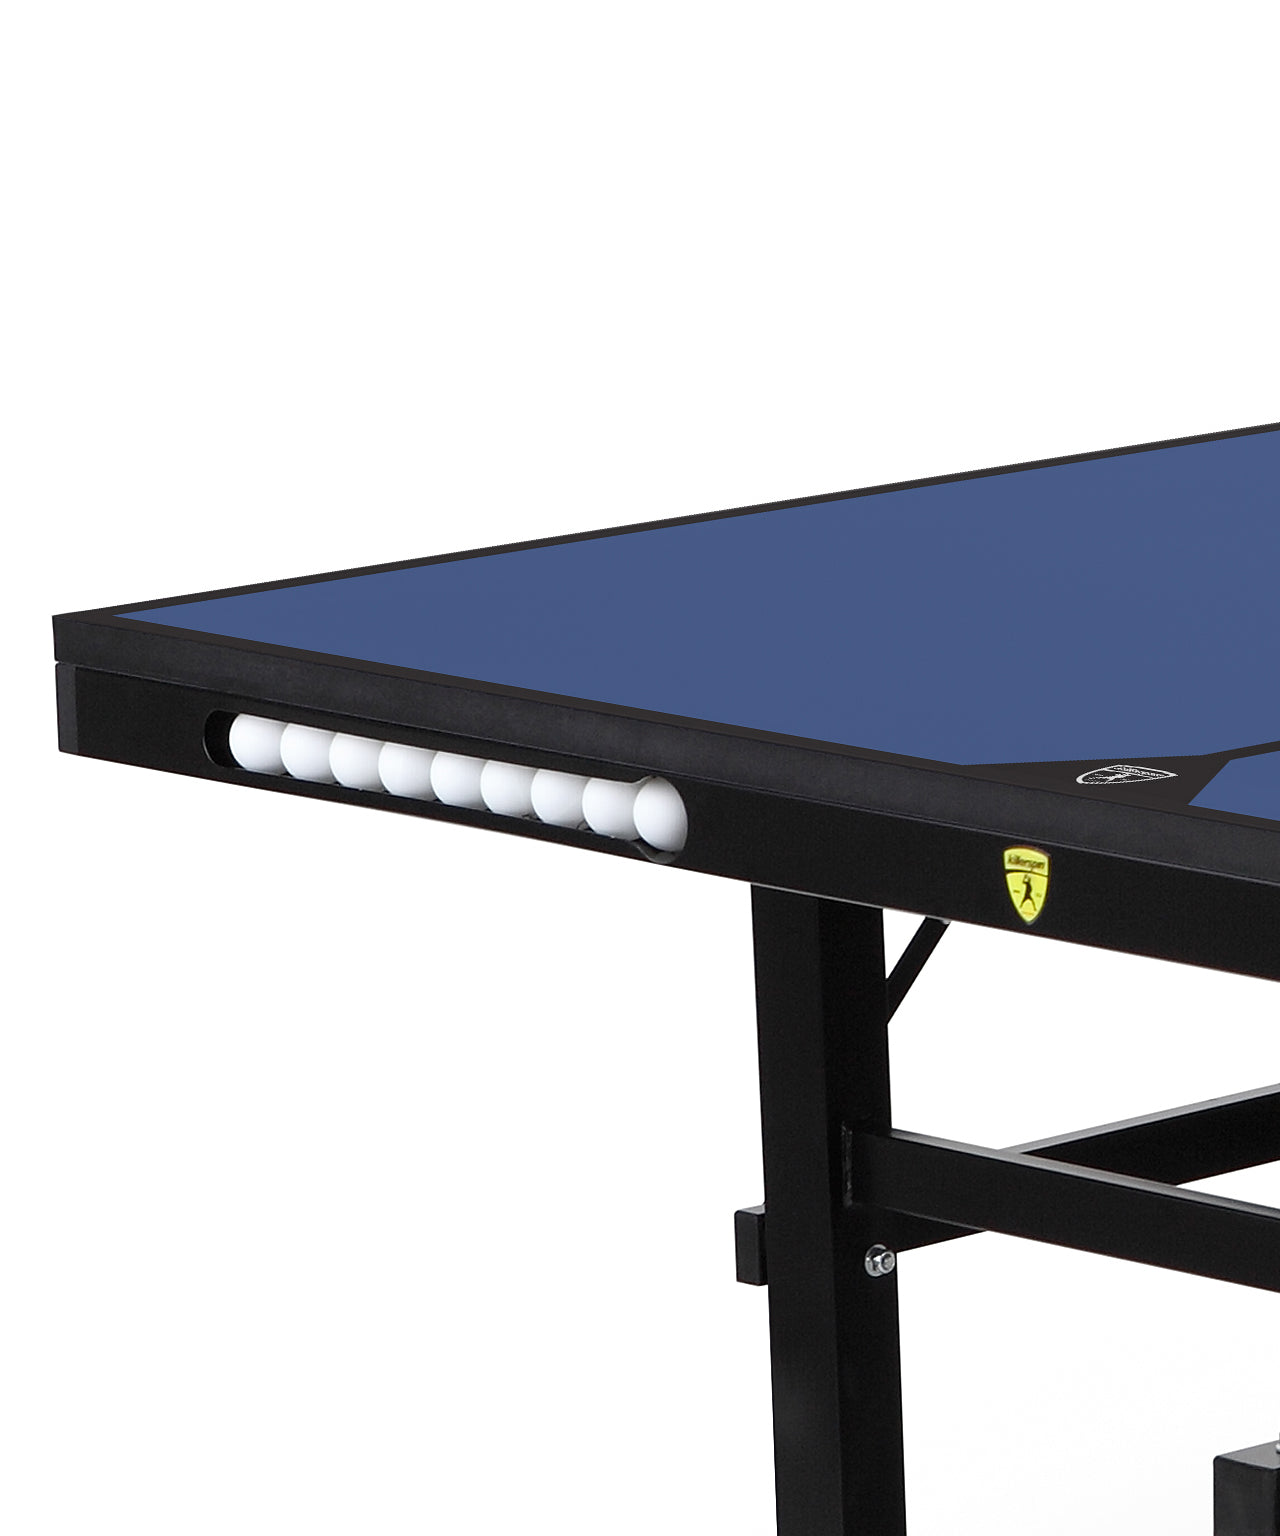 Killerspin Indoor Ping Pong Table UnPlugNPlay415 Max DeepBlu Black frame Blue top model 2020 - ball pocket